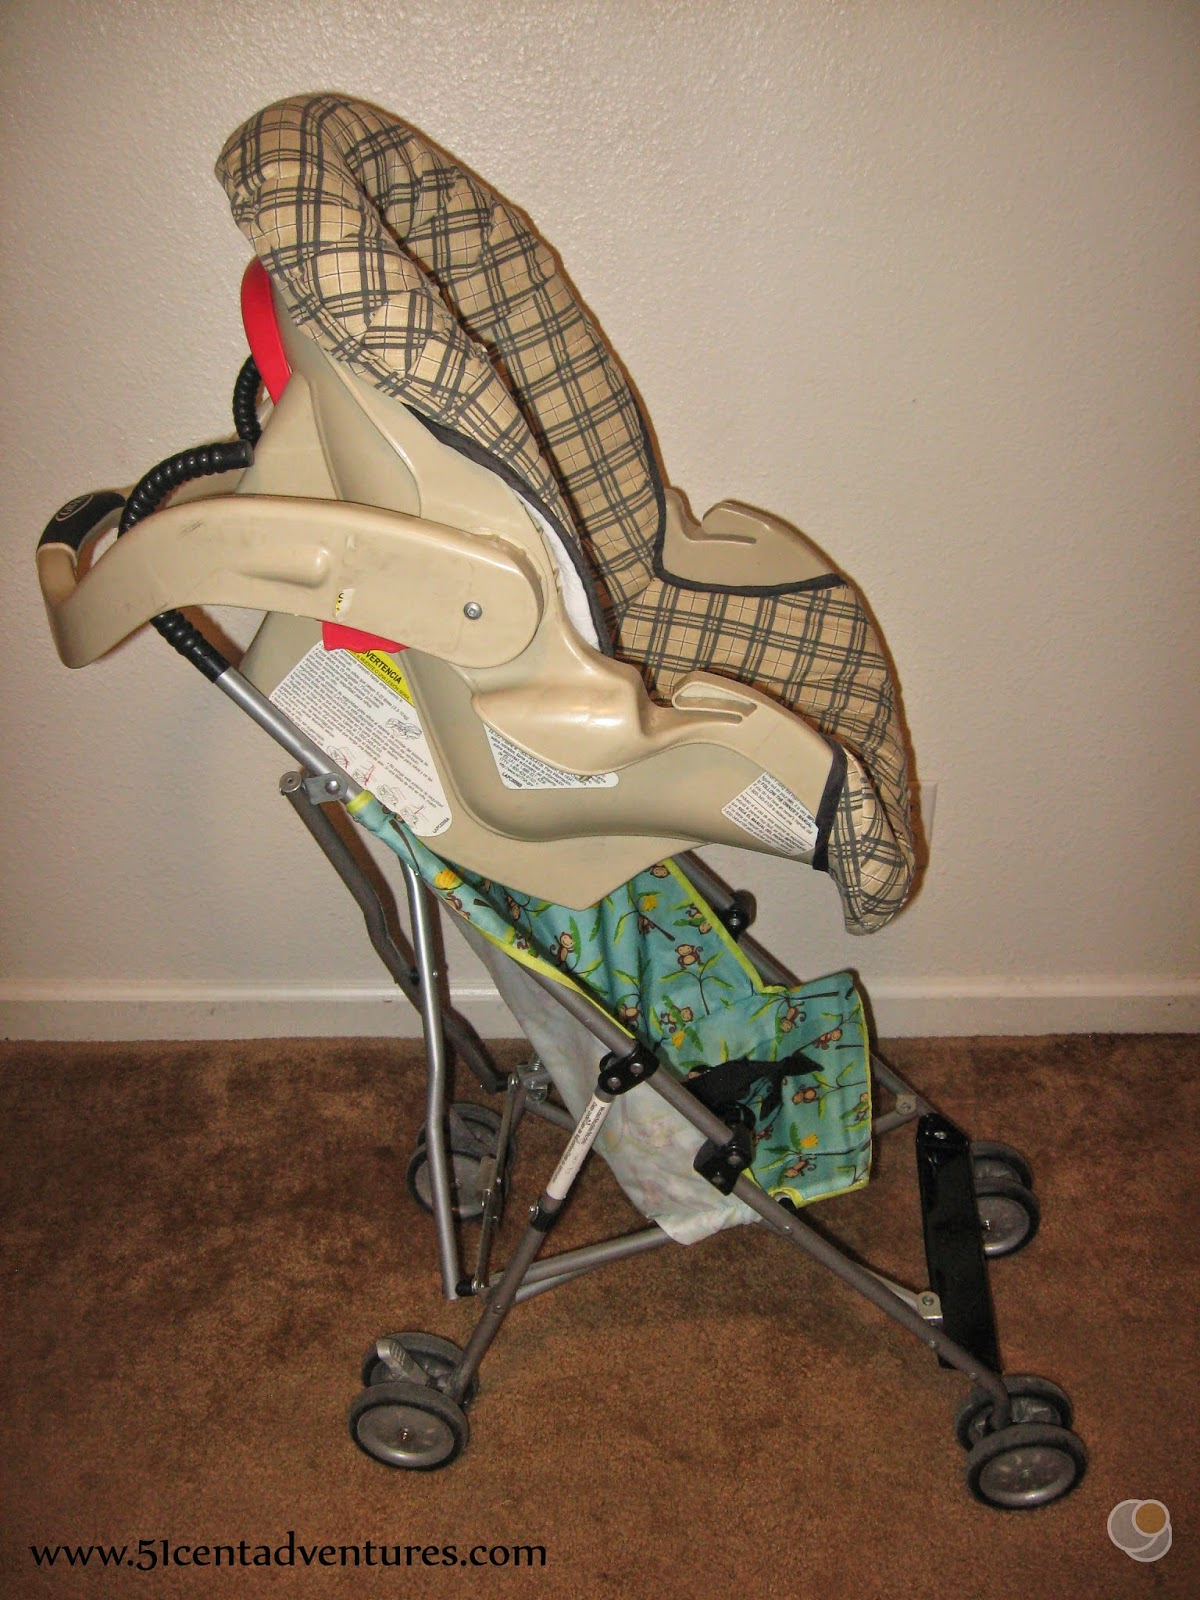 Step 3 Slide The Car Seat So Bottom Is Resting On Of Umbrella Stroller Make Sure Everything Secure And You Are Good To Go